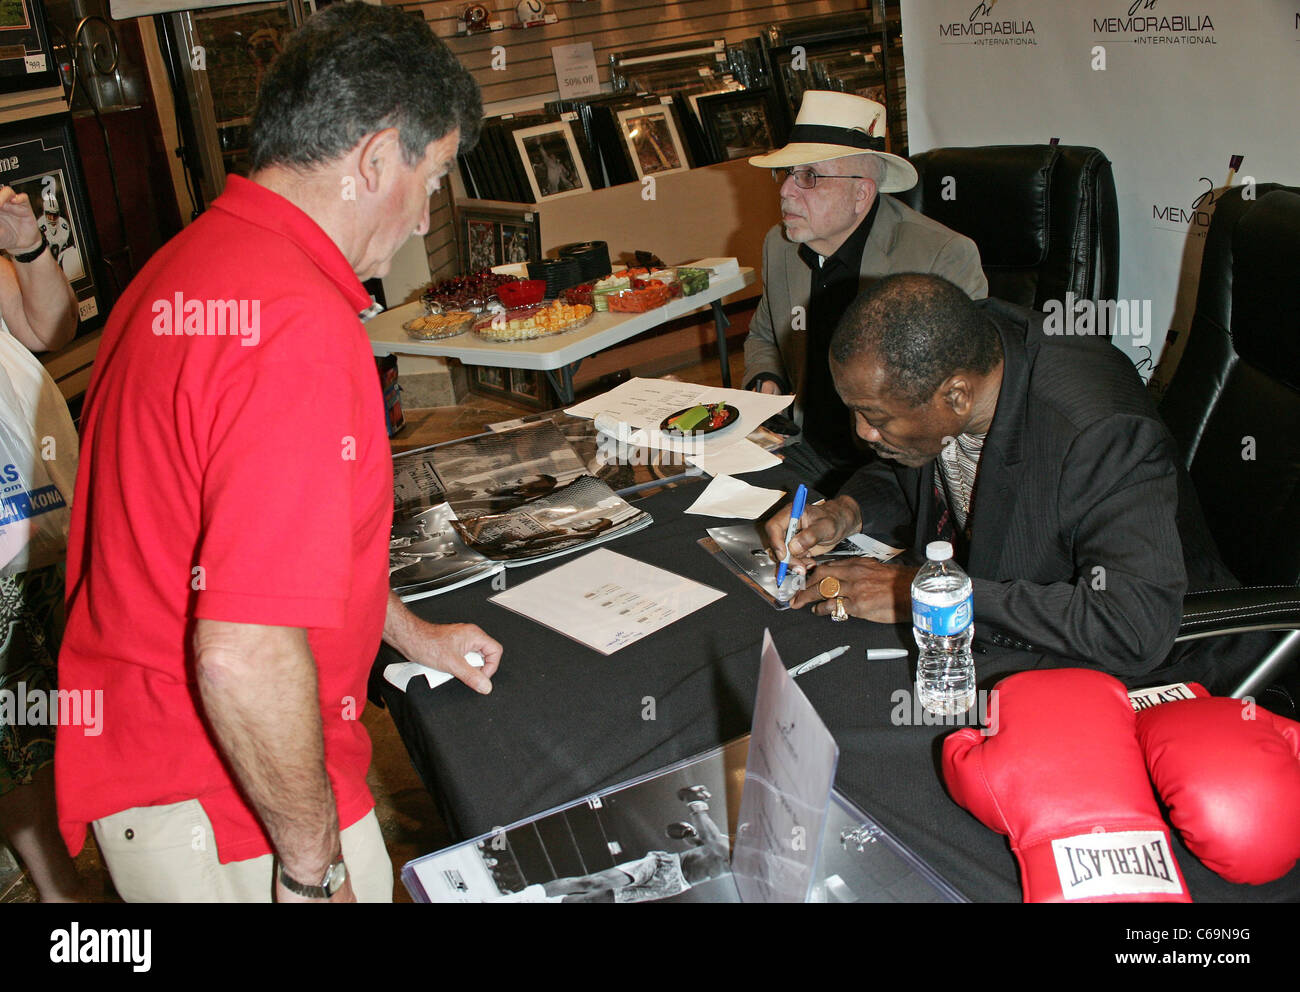 Joe Frazier at in-store appearance for Joe Frazier Meet and Greet at Memorabilia International, Miracle Mile Shops, - Stock Image